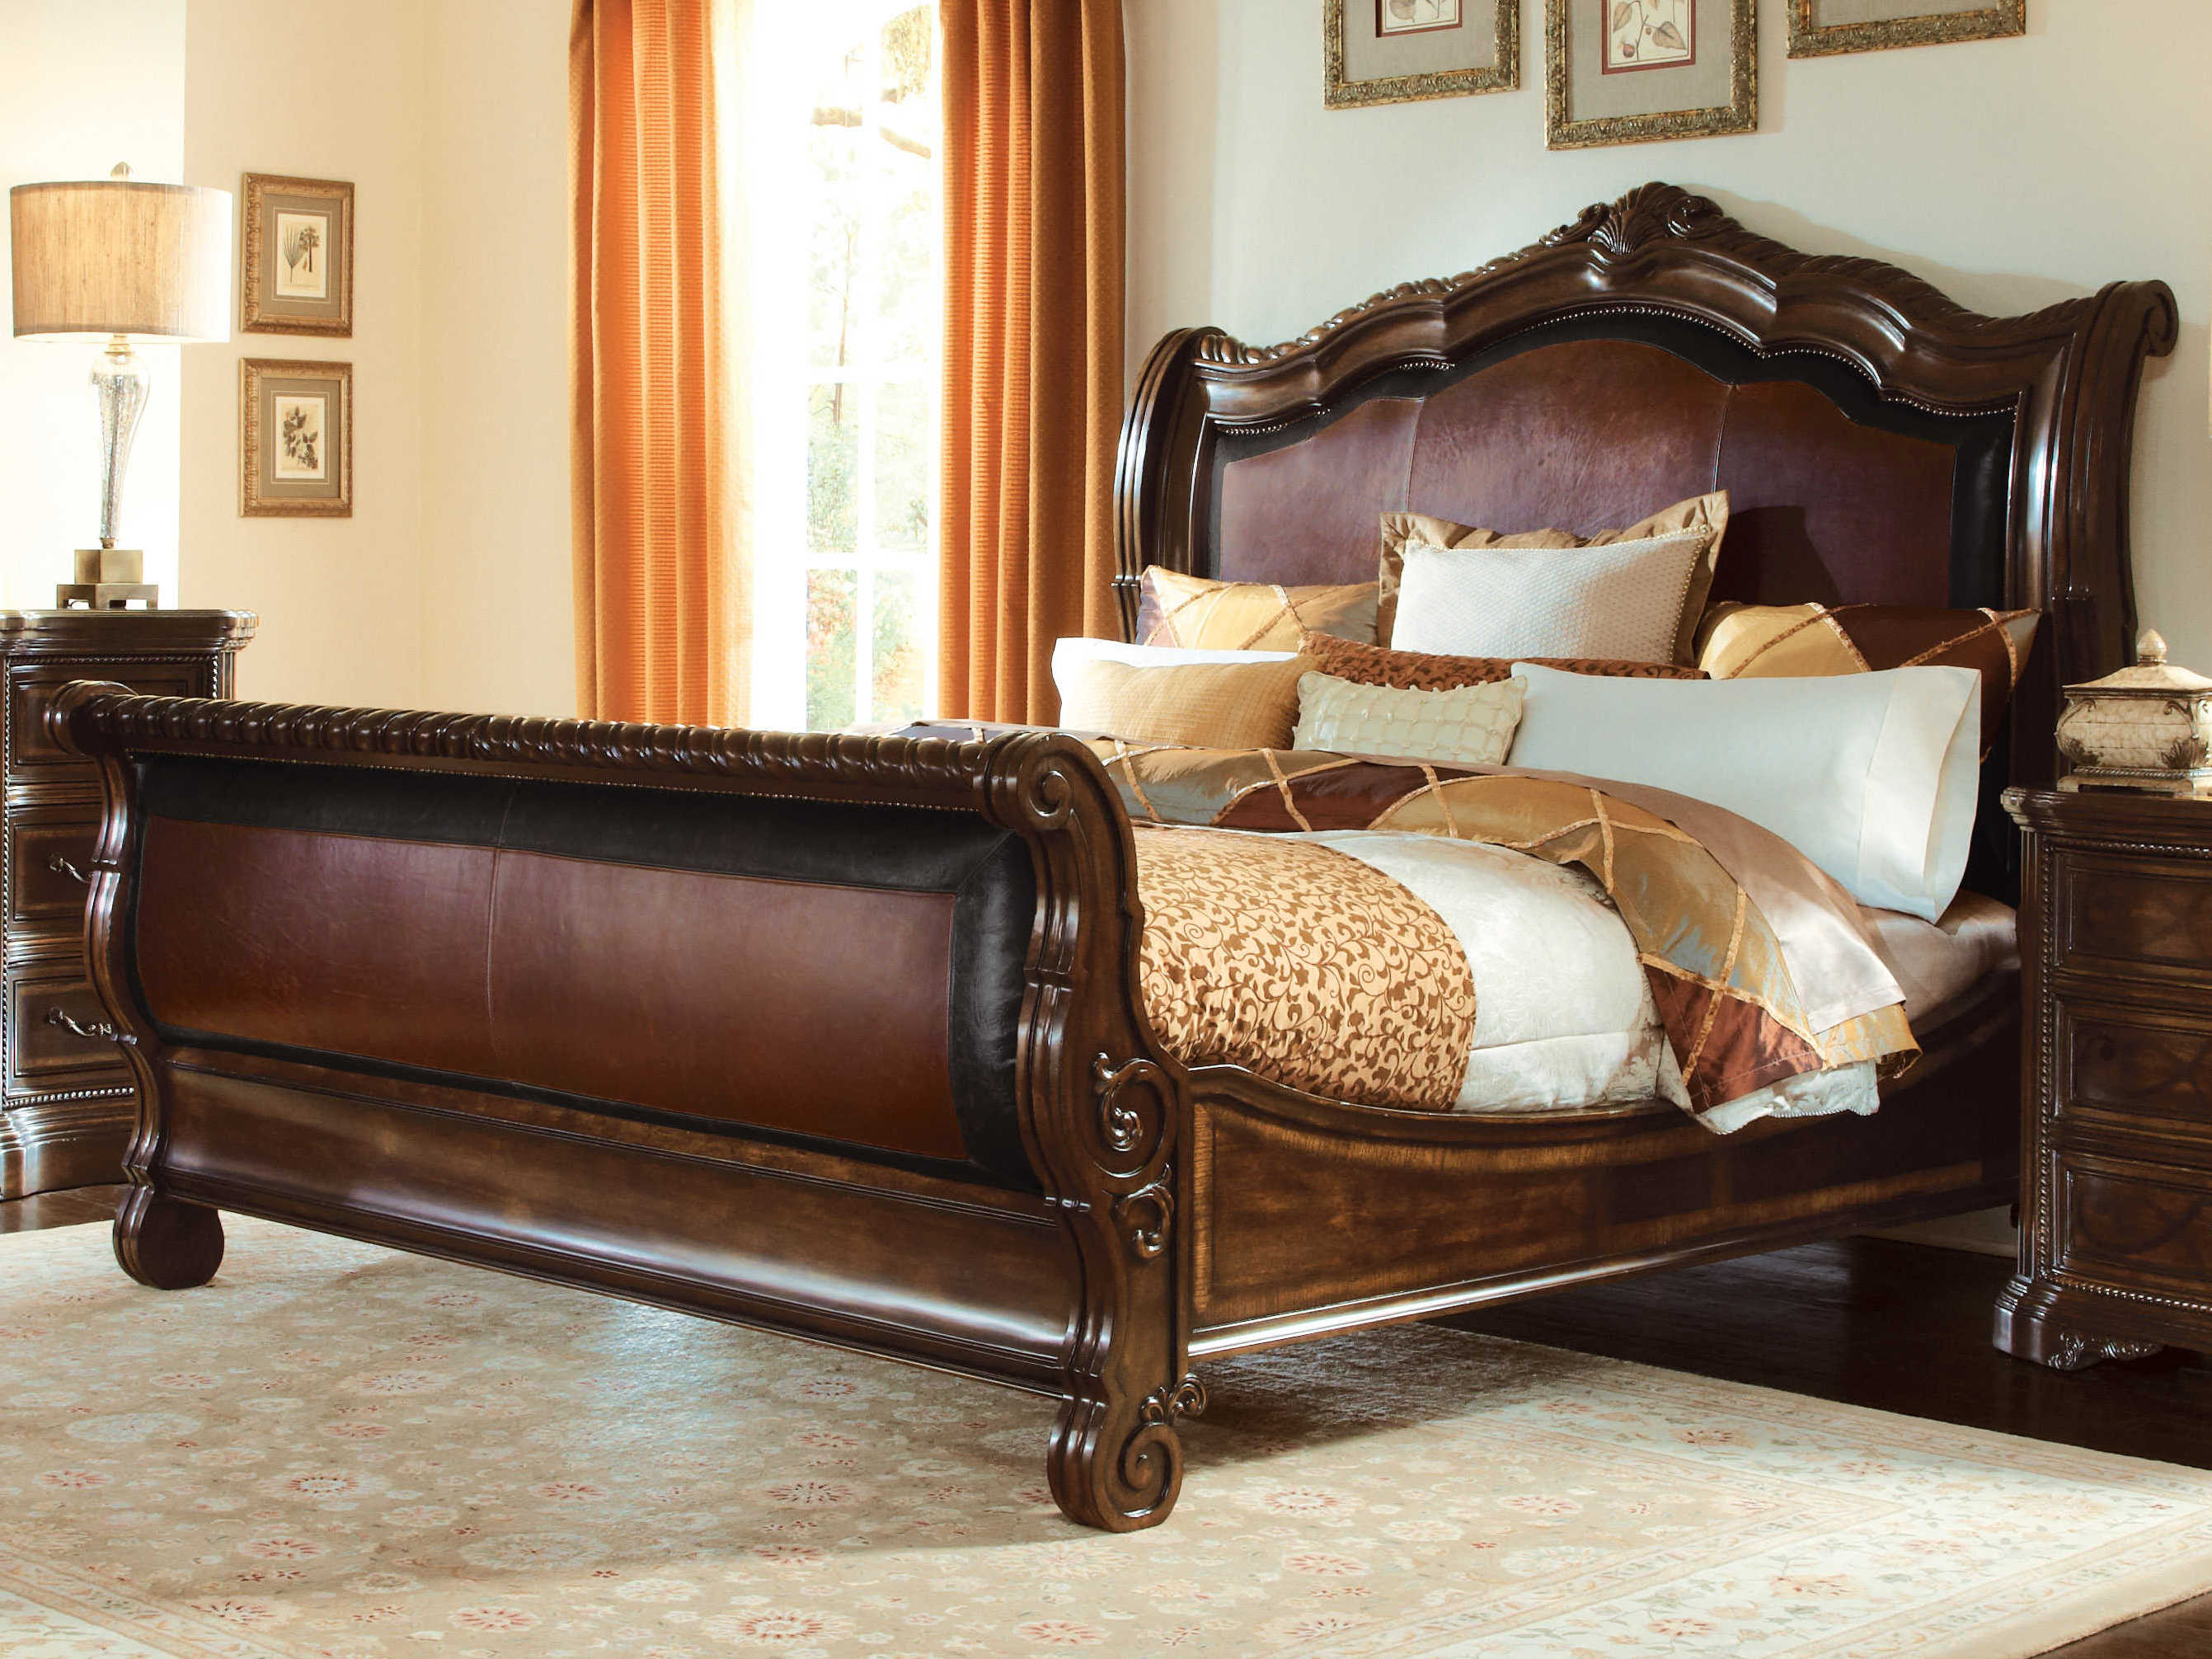 Picture of: King Size Sleigh Bed